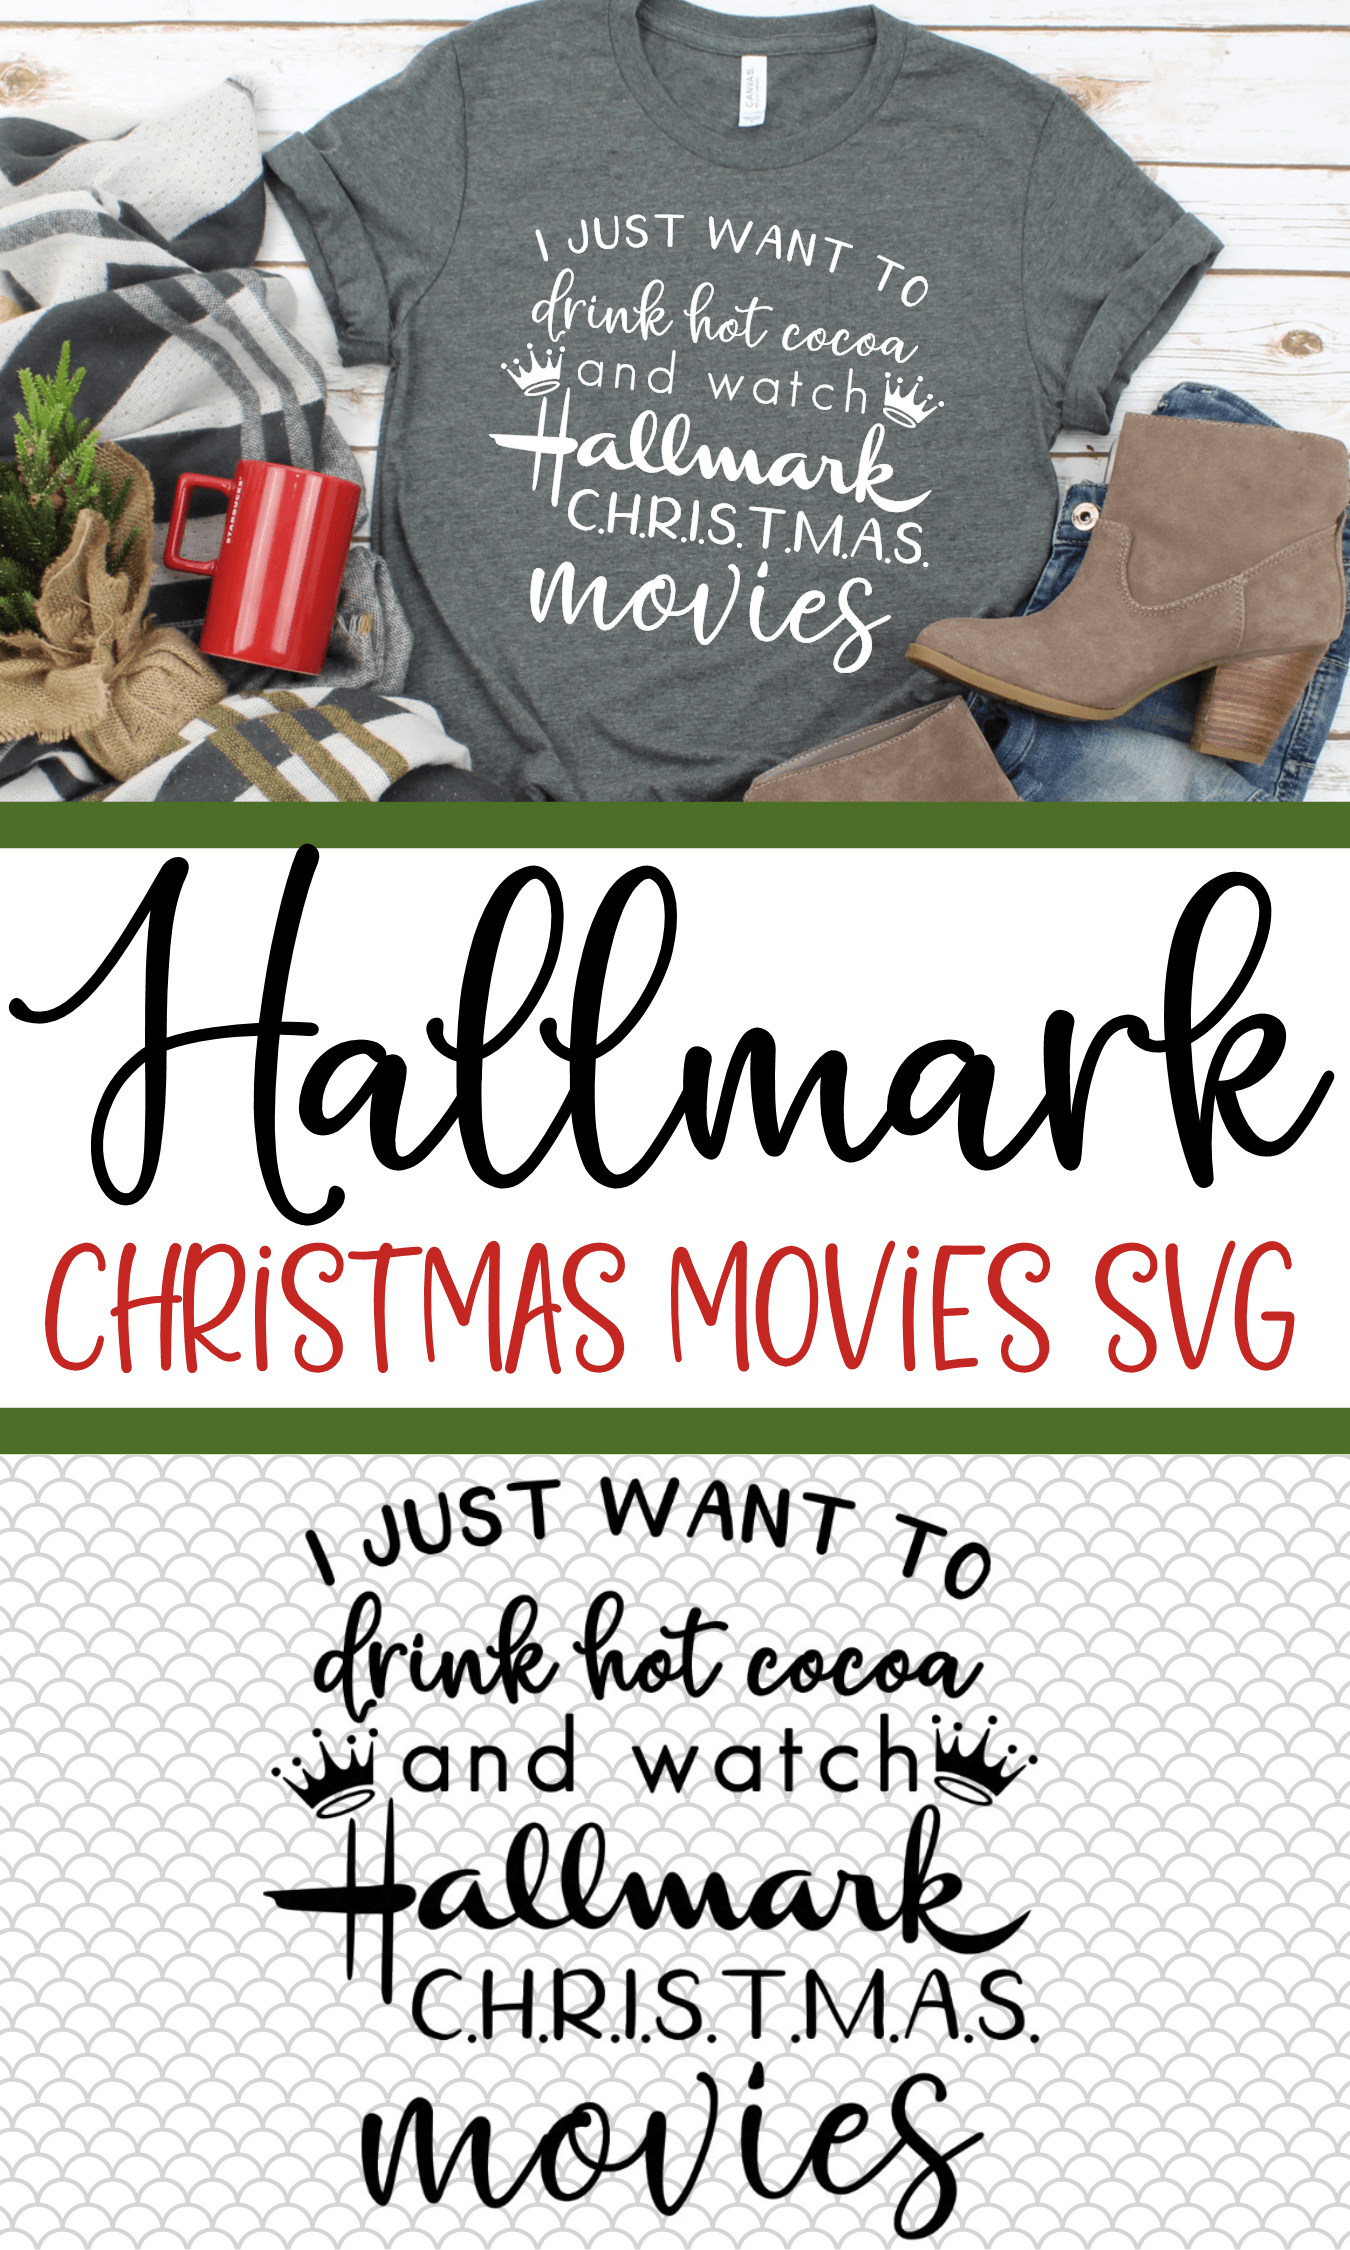 47 Hallmark Christmas Movie T Shirt Svg Hop That S What Che Said 26 Hallmark Christmas Movie Shirt Svg Pictures